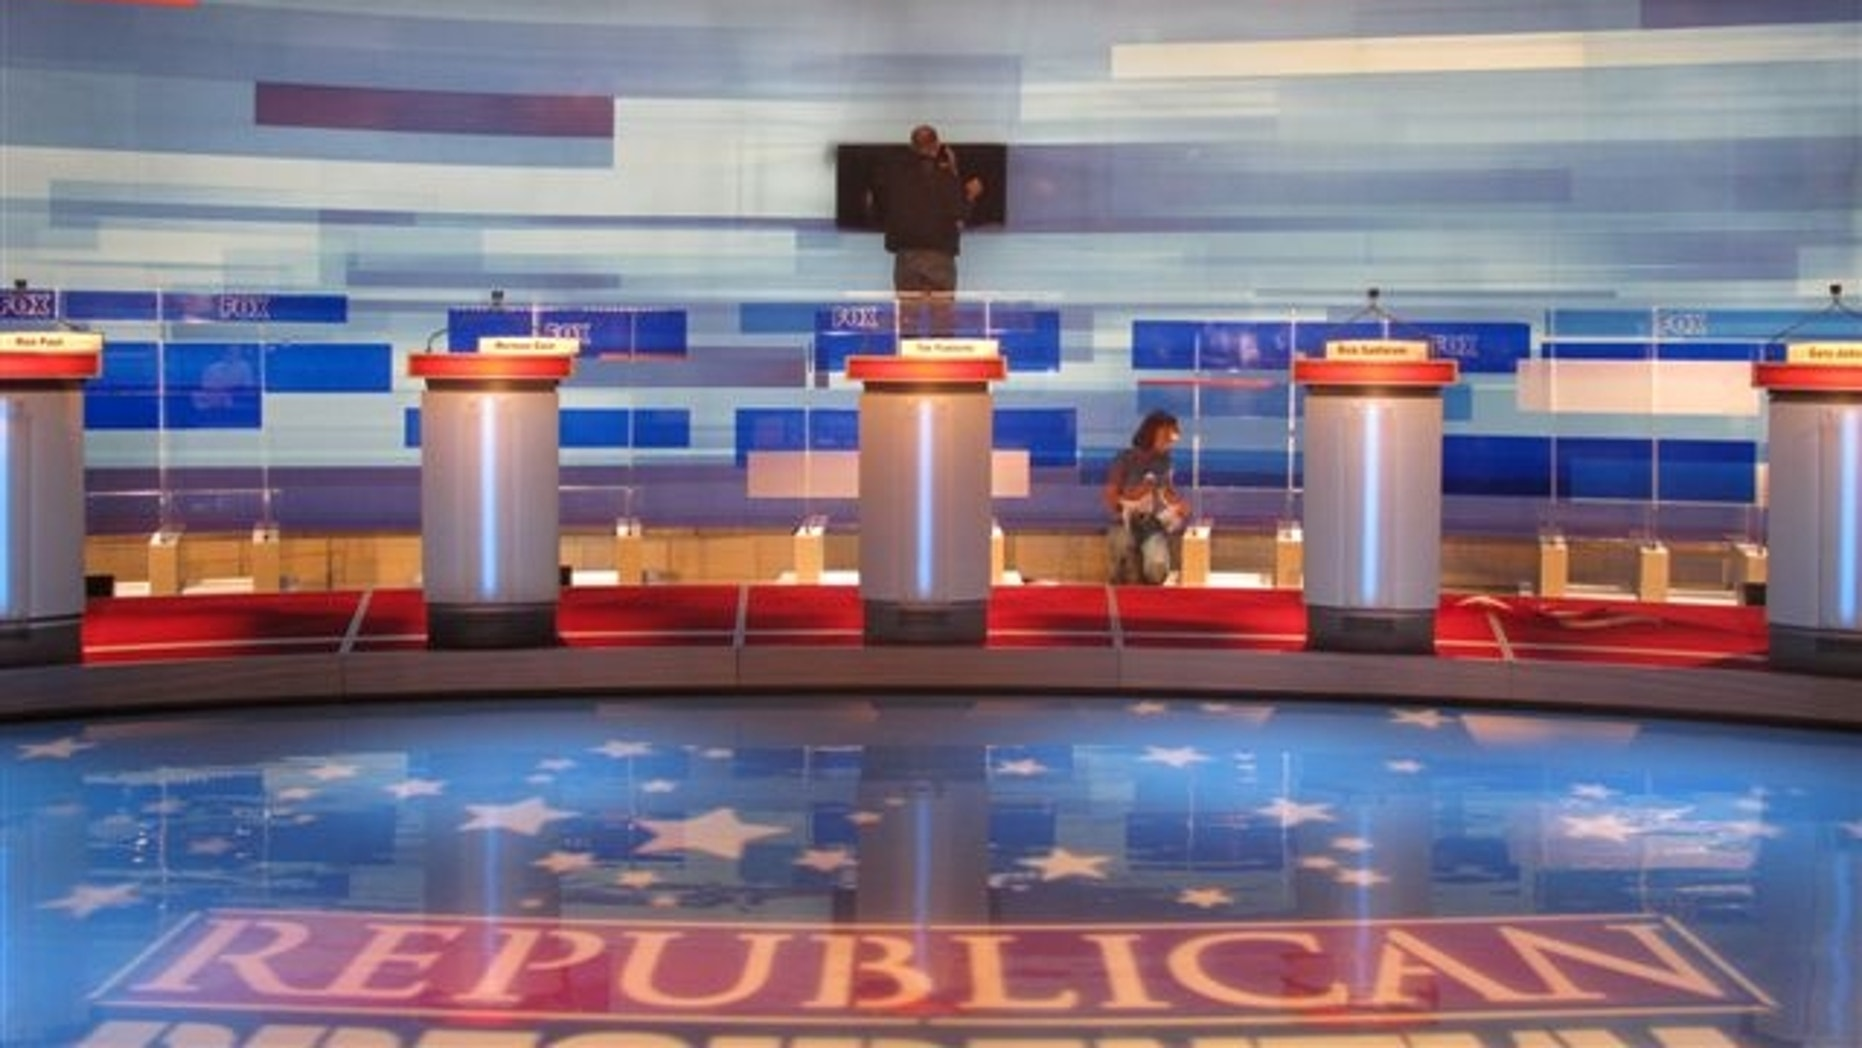 The stage is constructed ahead of the first 2012 presidential debate hosted by FOX News in Greenville, S.C. (Katy Ricalde/Fox News Photo)